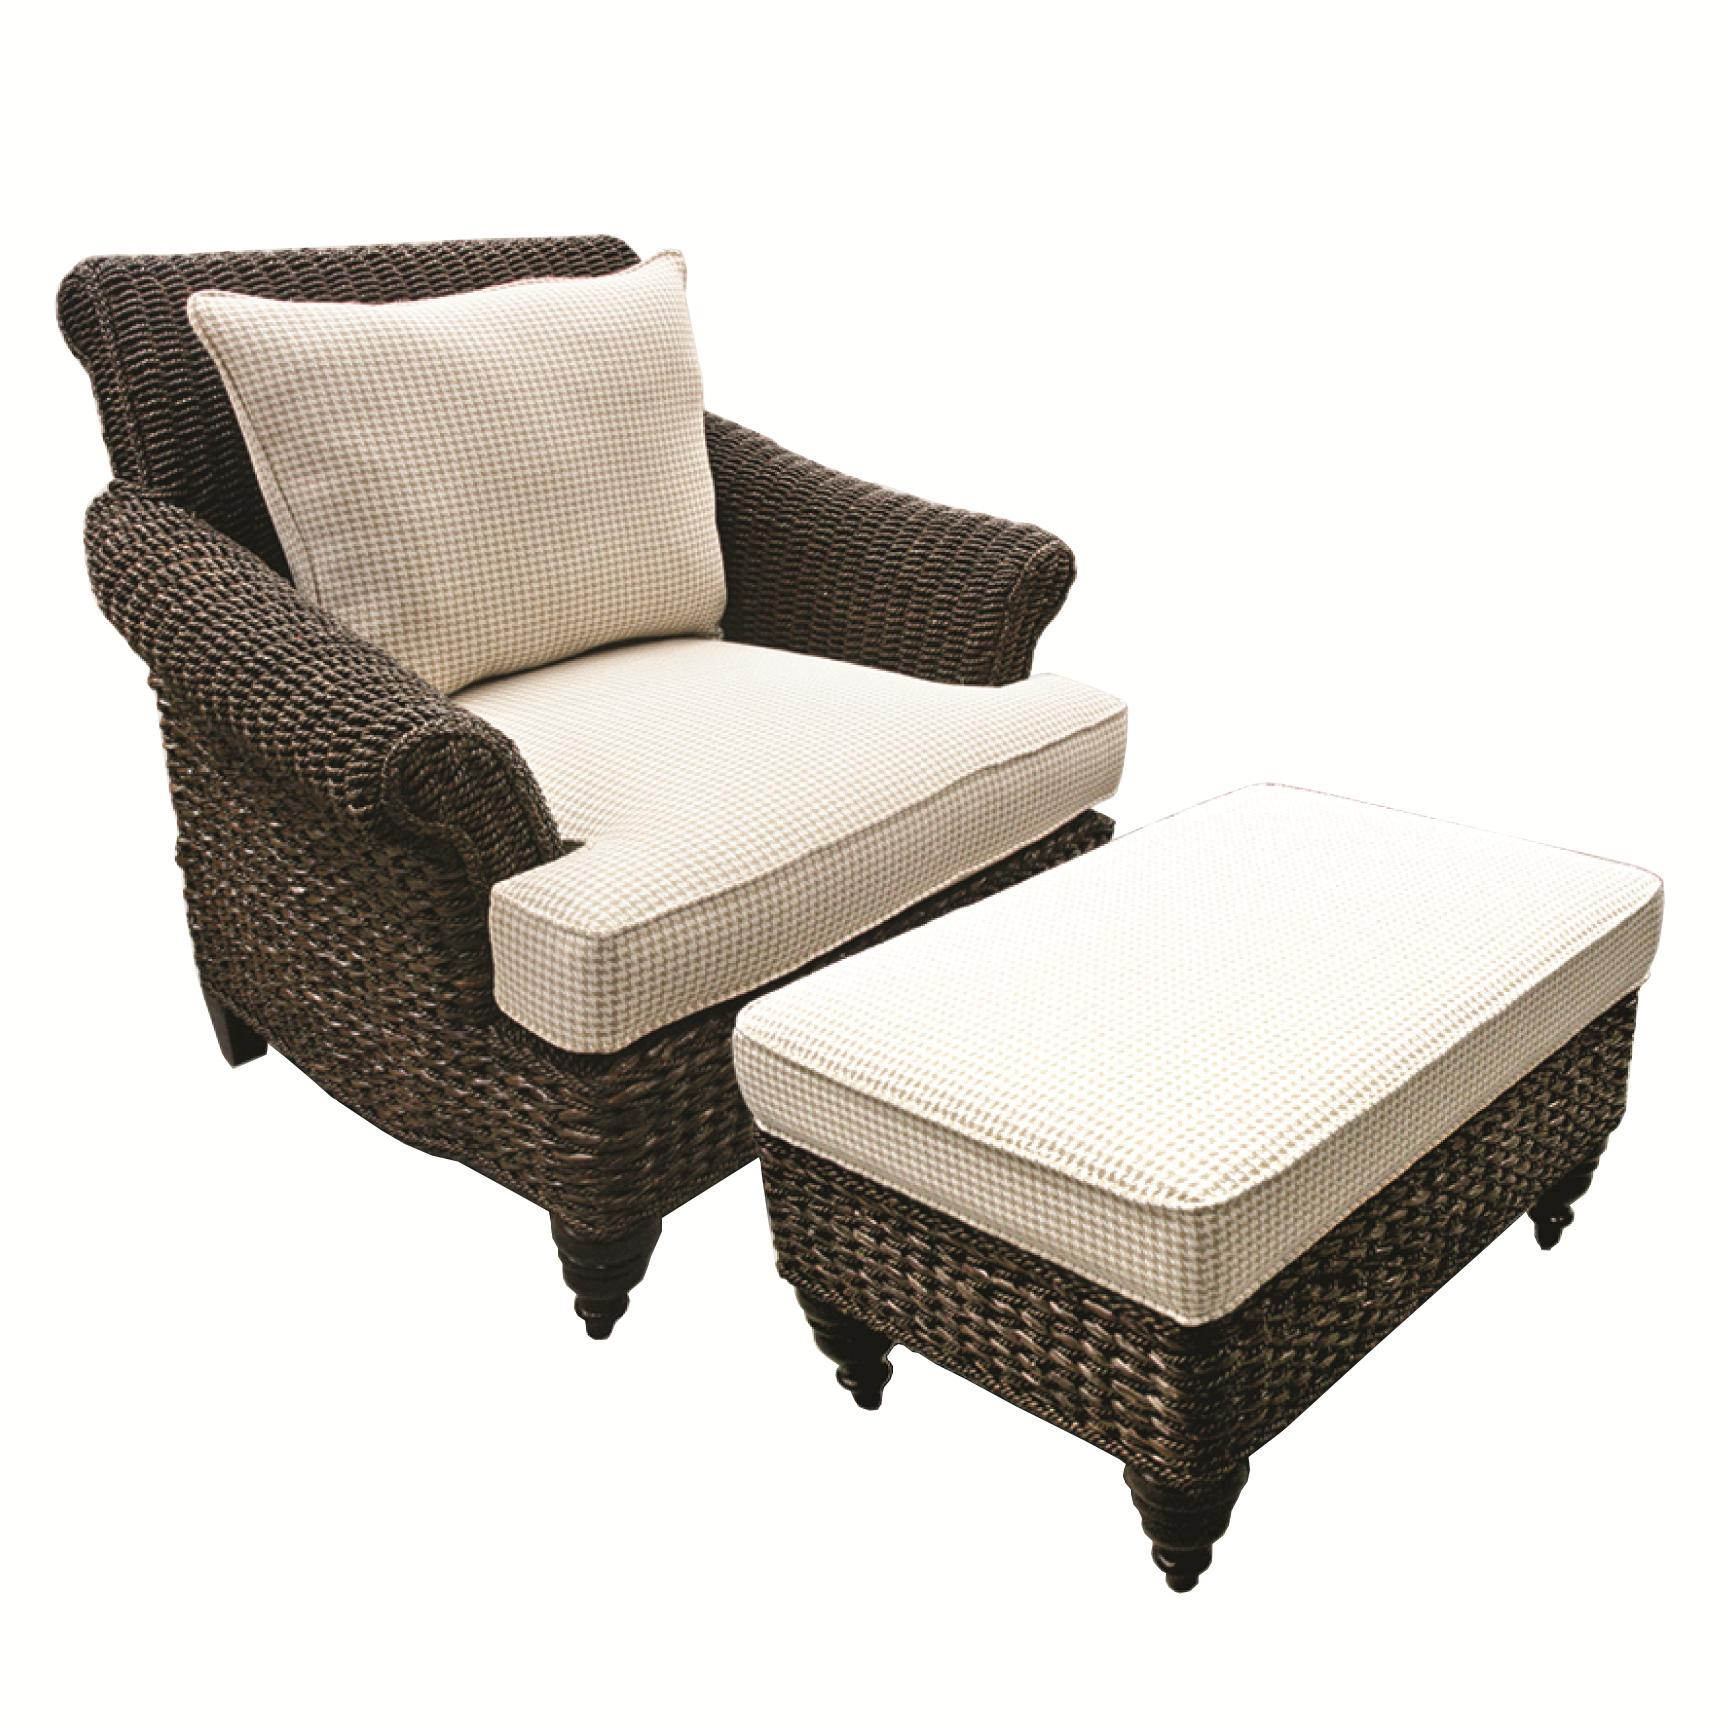 Capris Furniture Chairs And Ottomans Wicker Chair And Ottoman Set